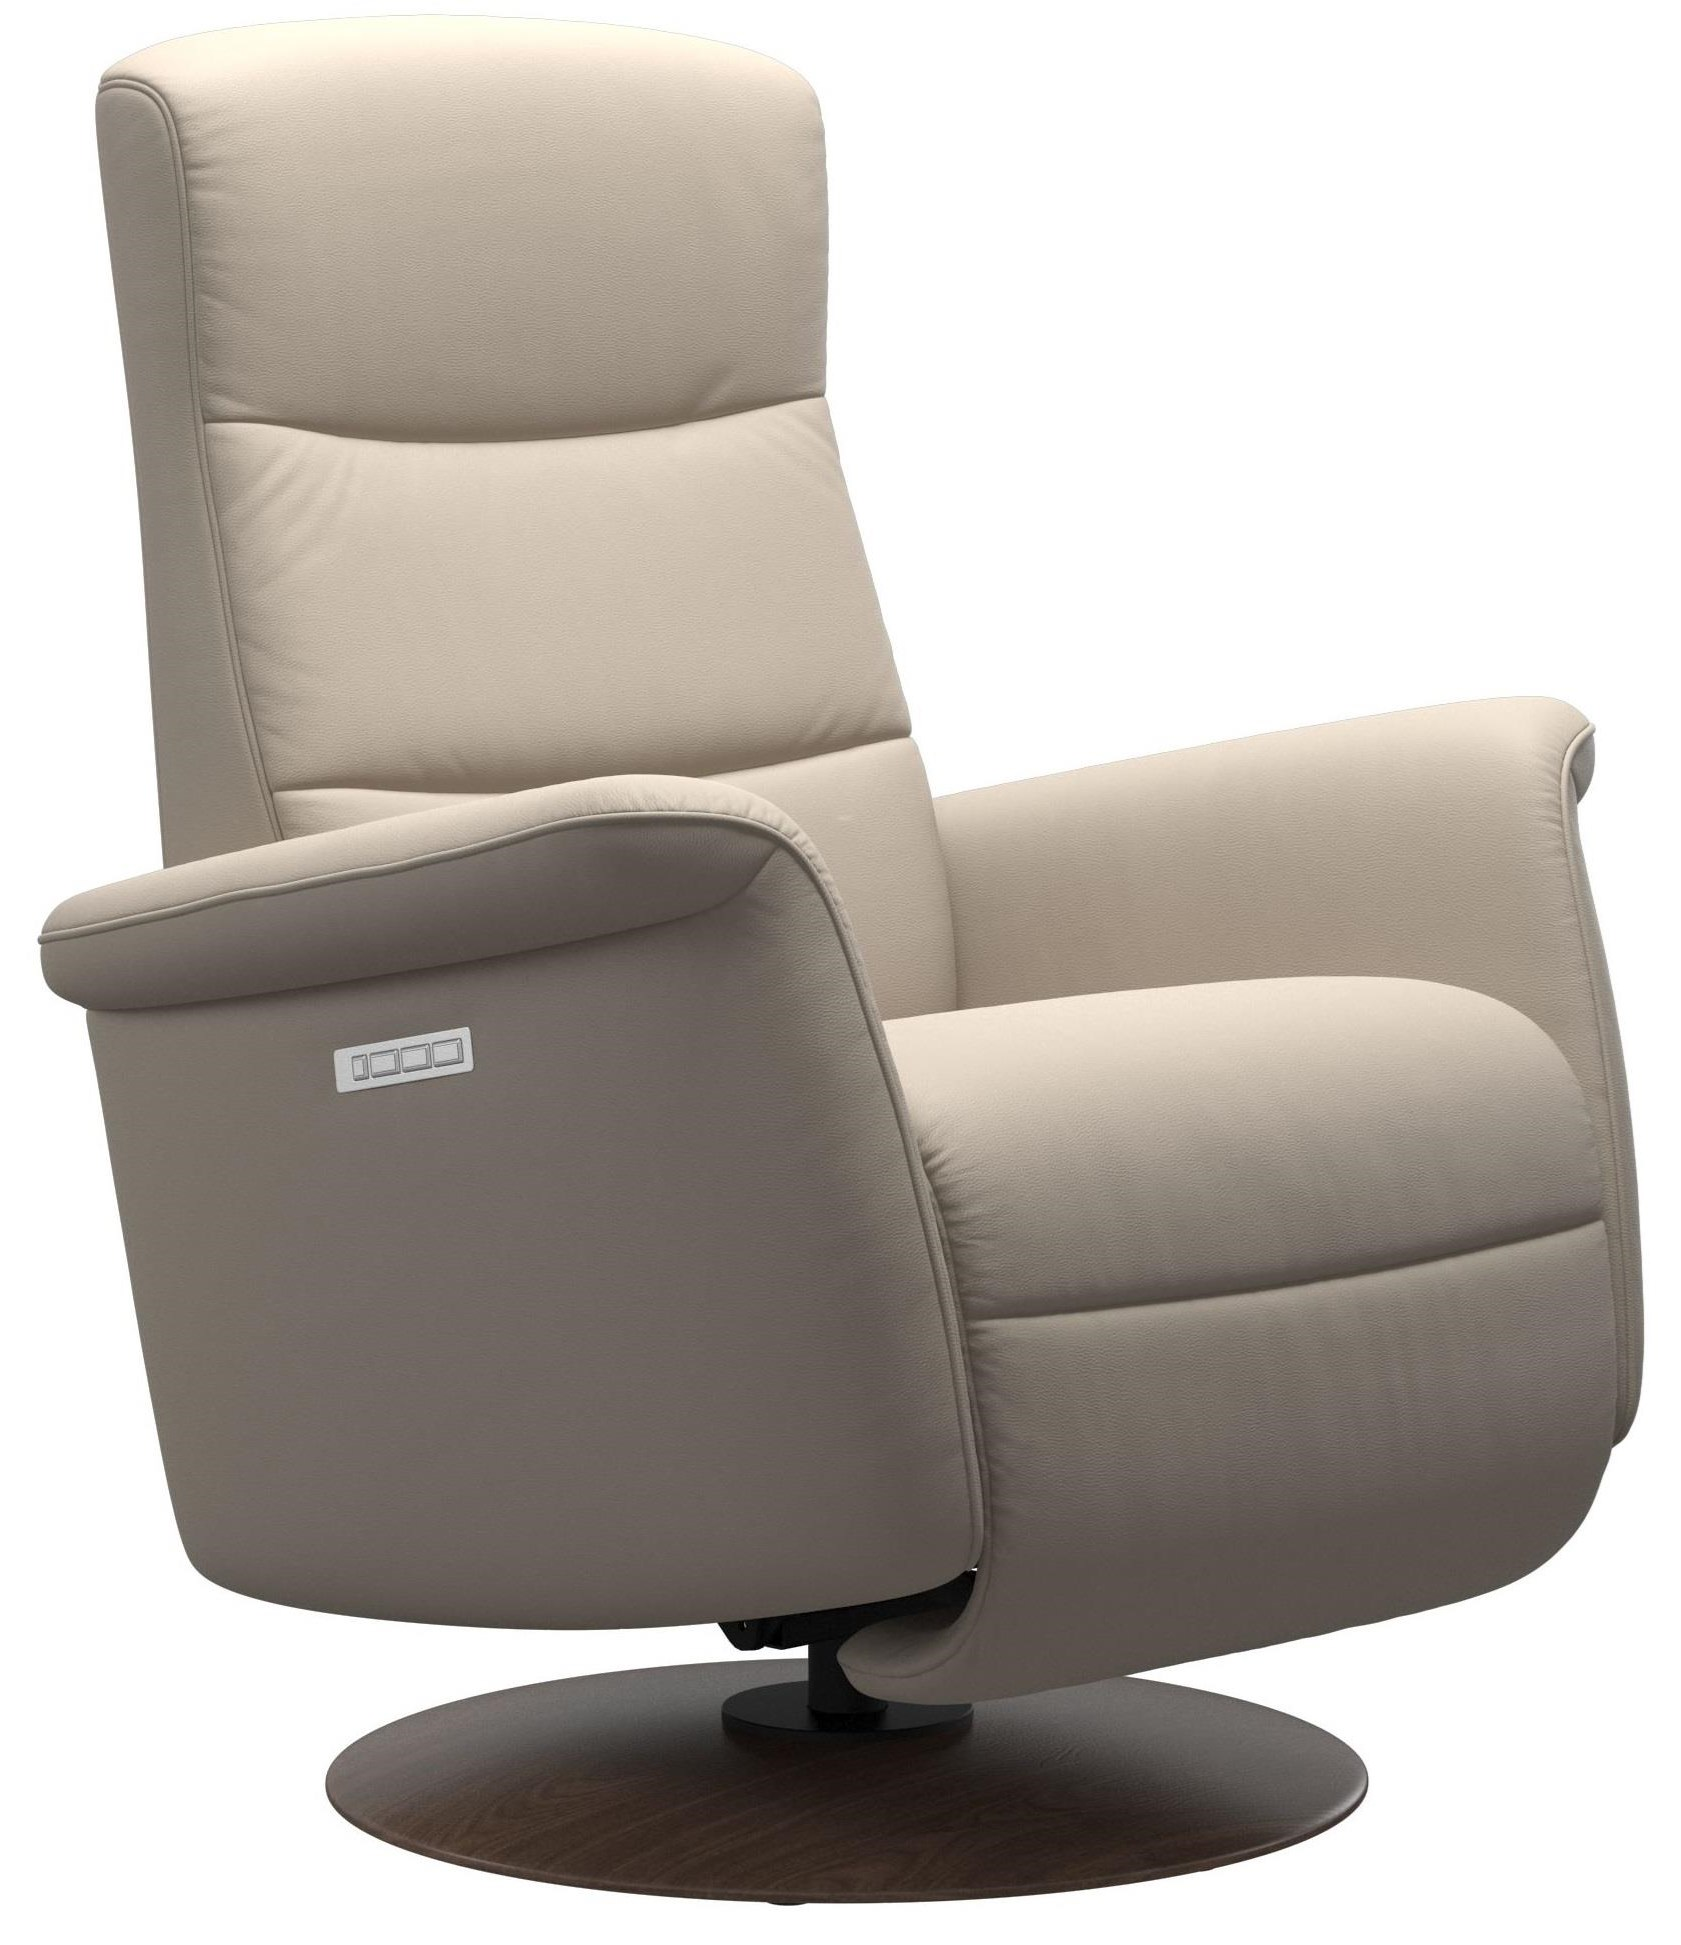 Mike Large Power Recliner by Stressless at Bennett's Furniture and Mattresses